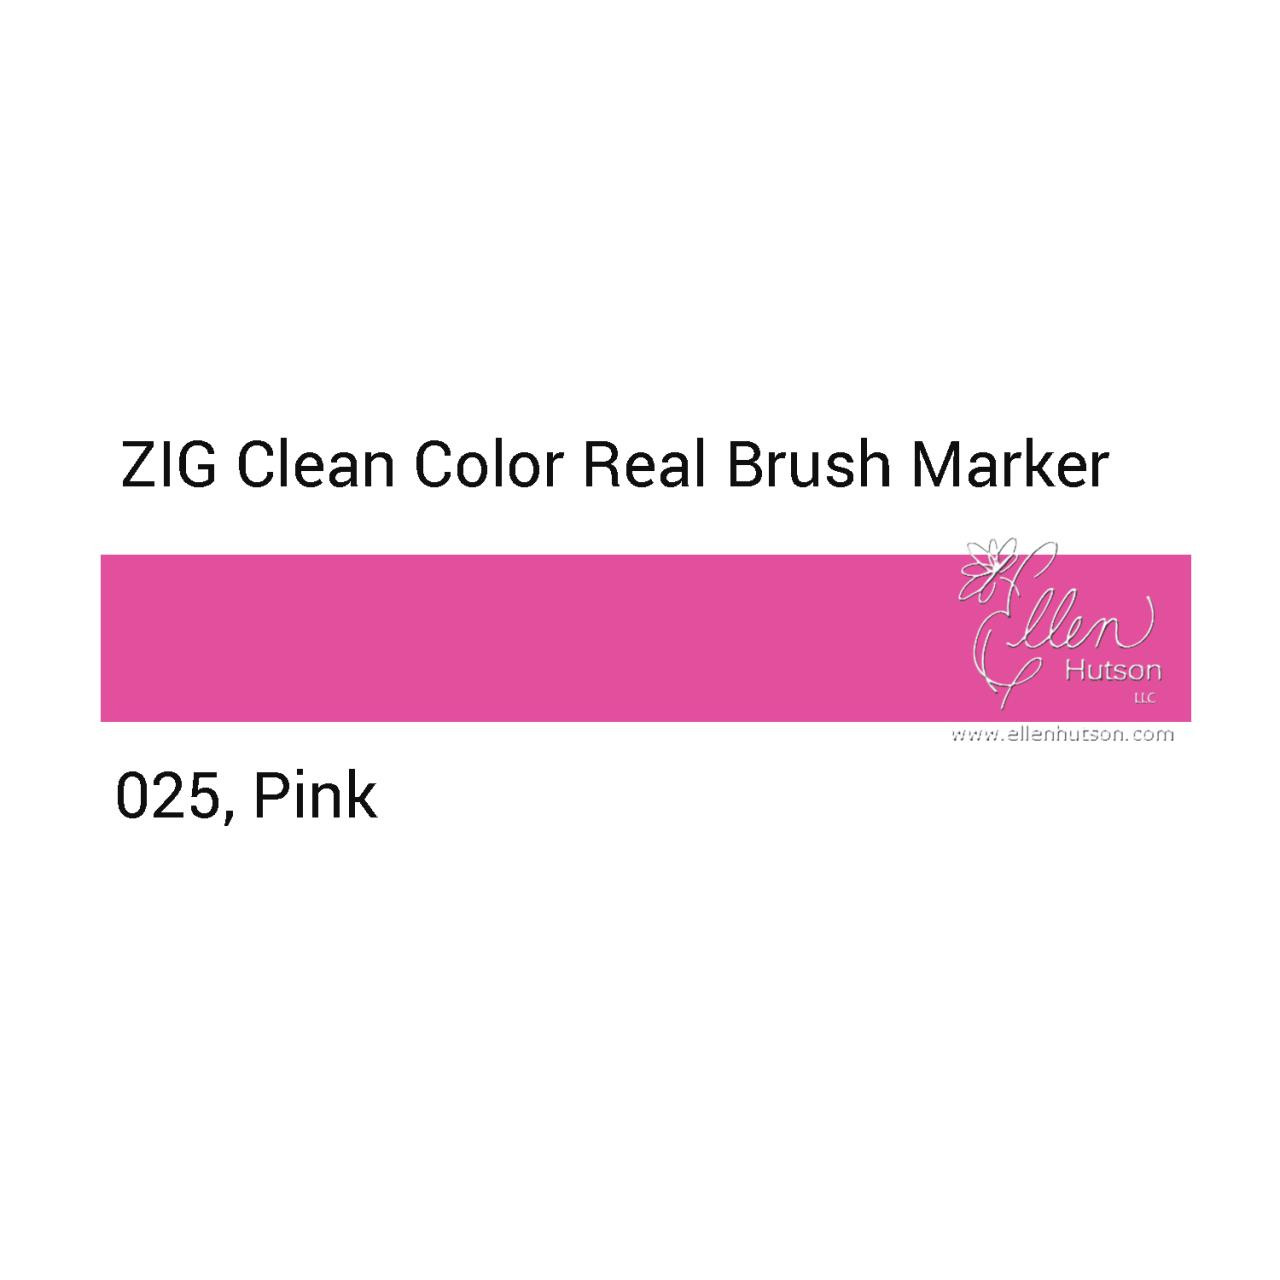 025 - Pink, ZIG Clean Color Real Brush Marker -